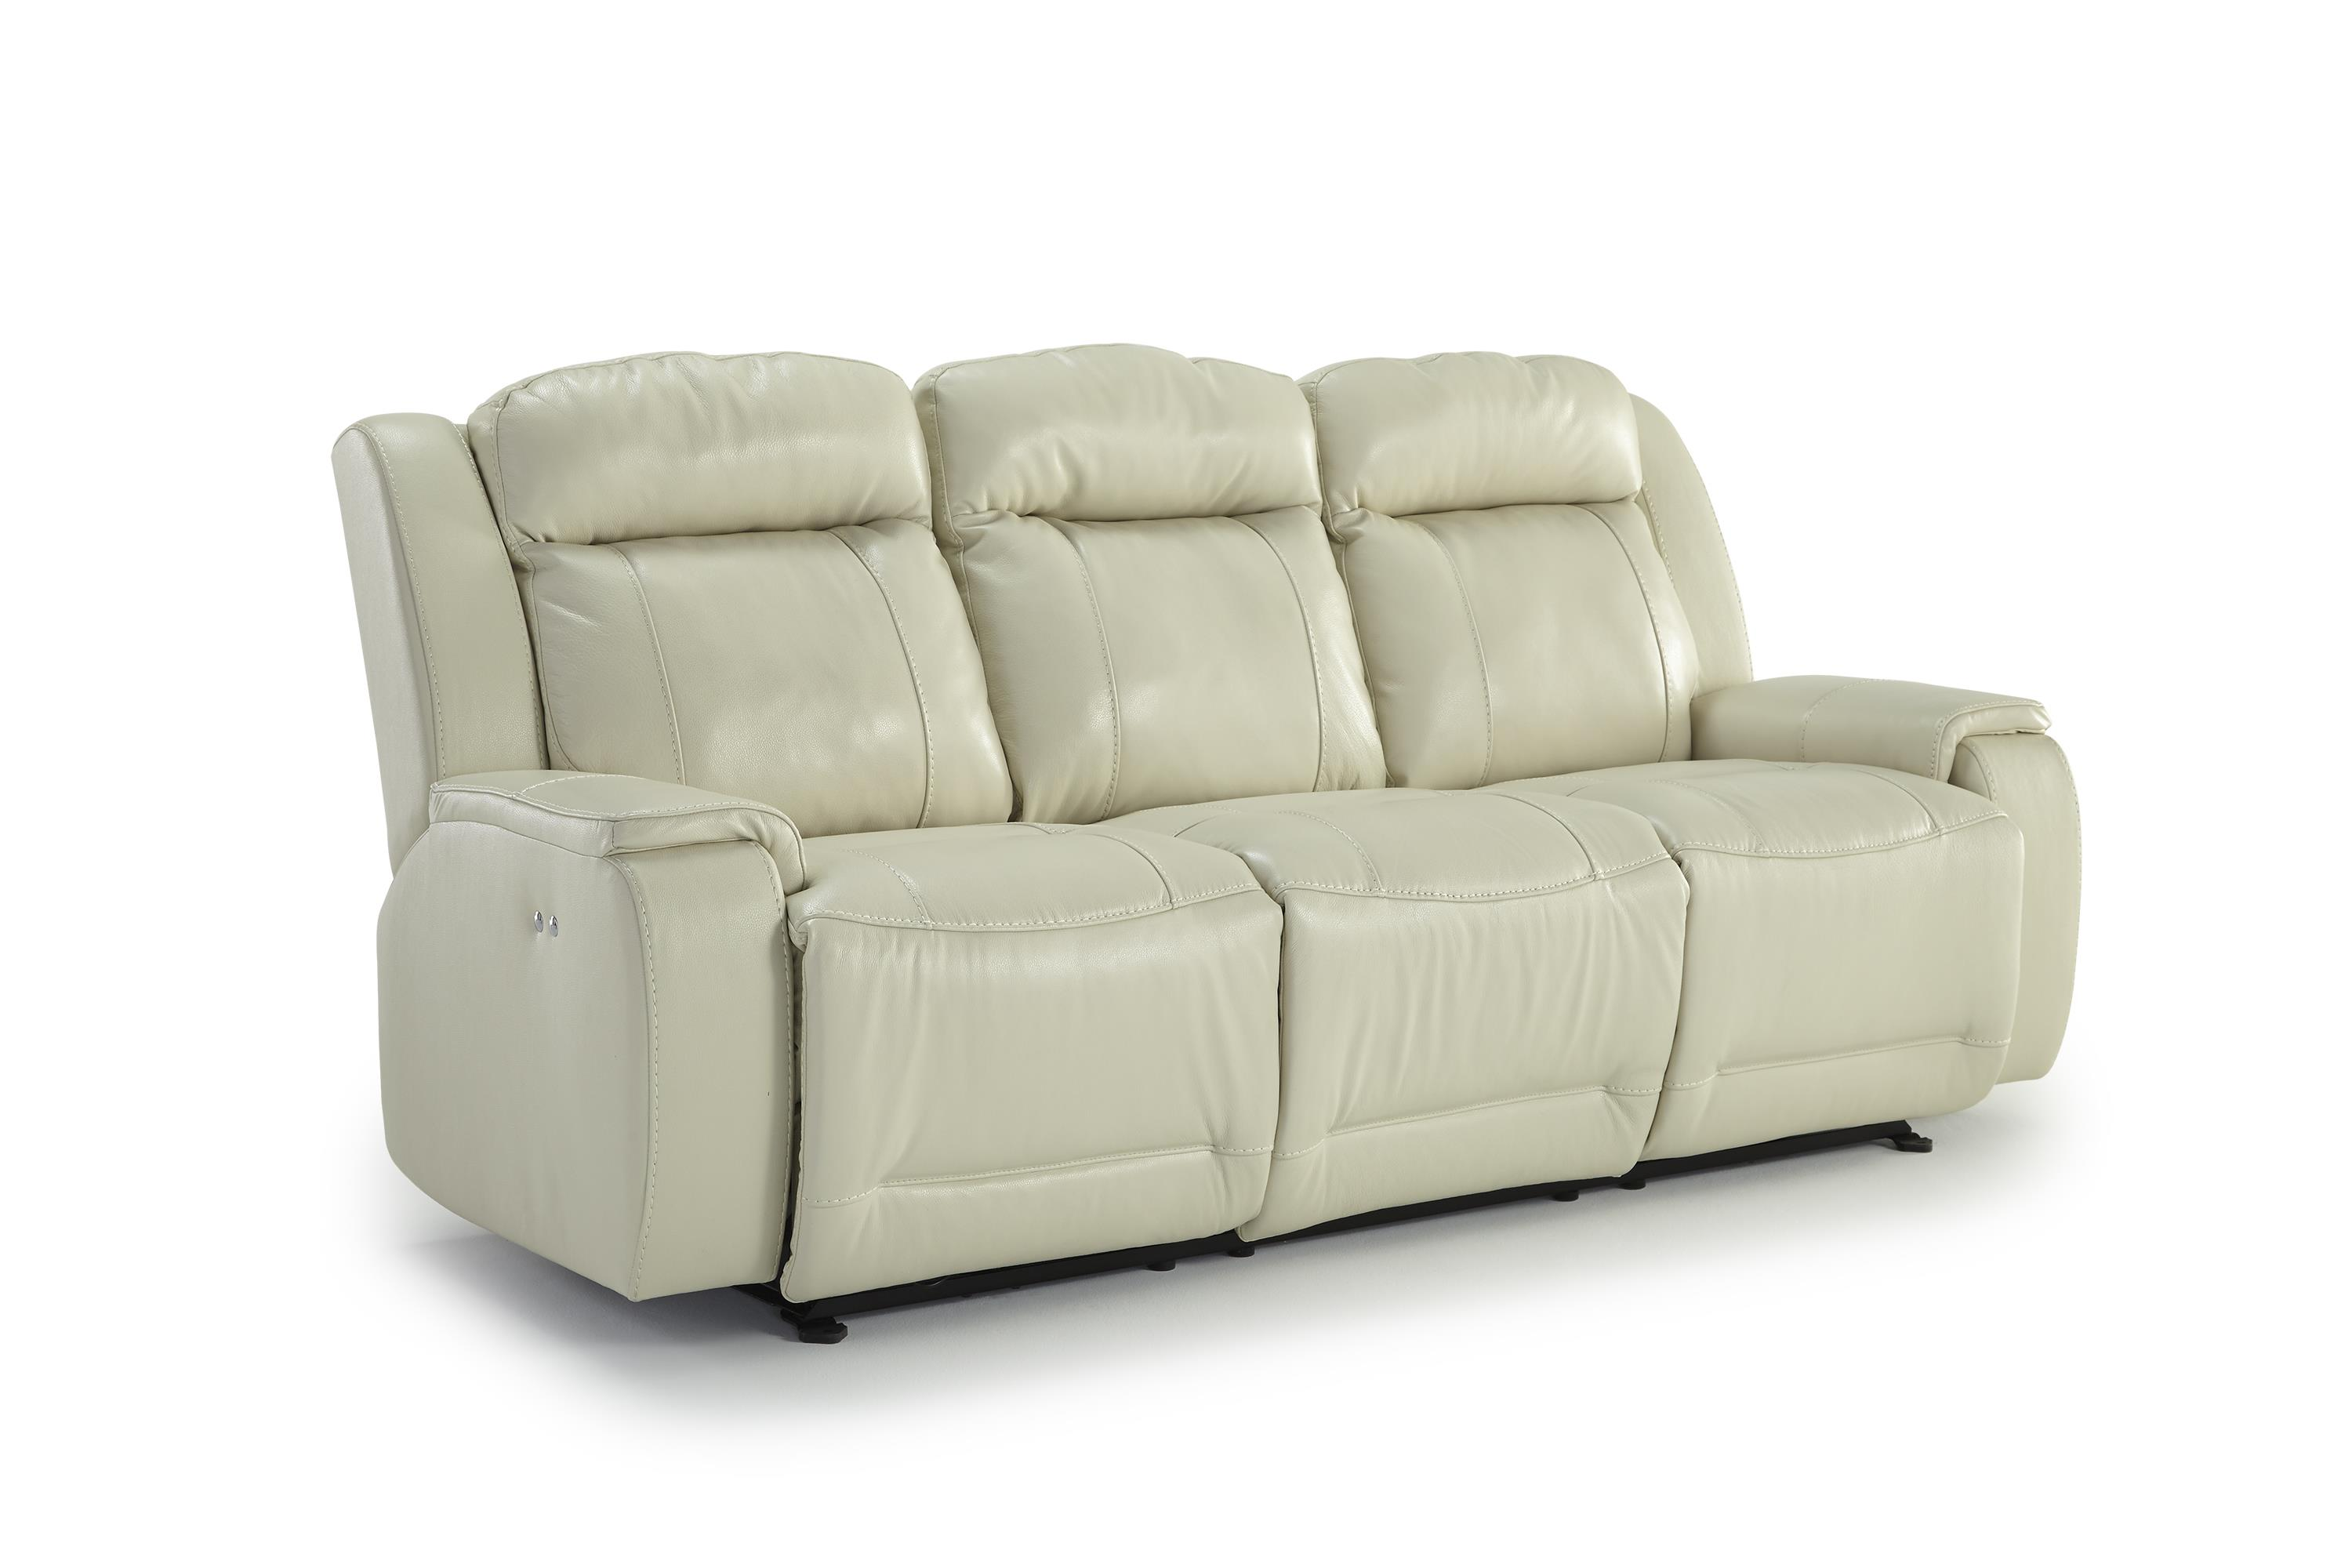 Best Home Furnishings S680 Bodie Reclining Uph - Item Number: S680CA4 76507L